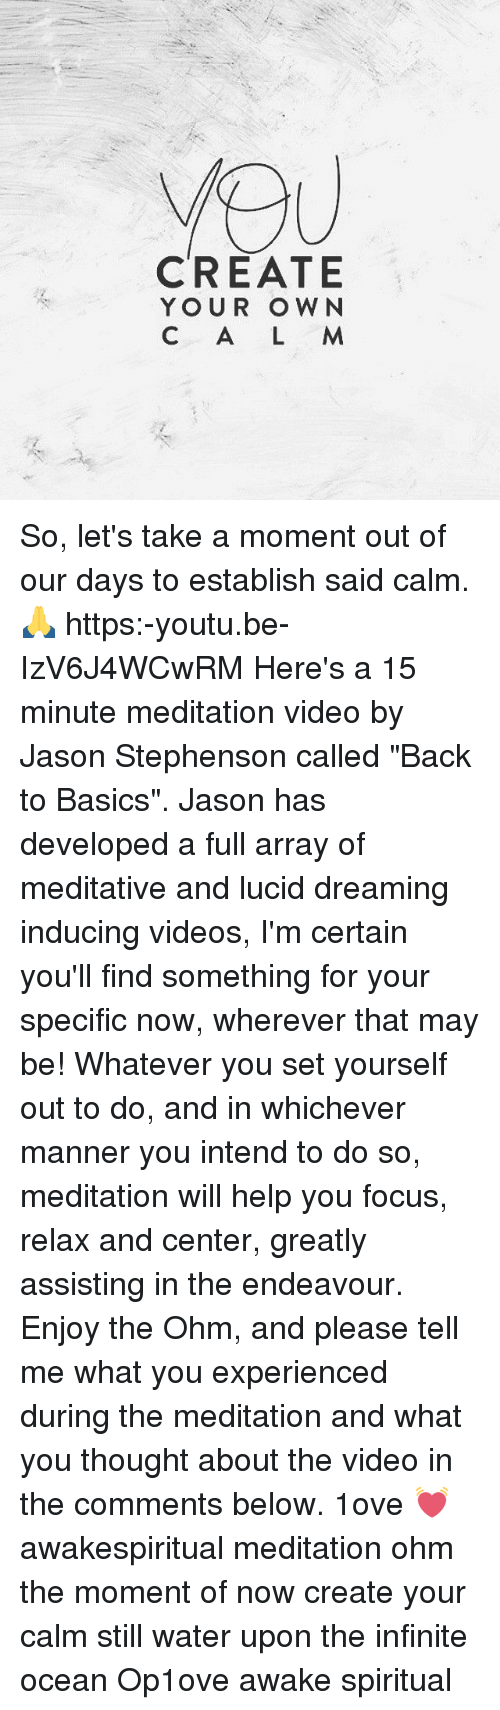 "Memes, Videos, and Focus: CREATE  YOUR OWN  C A L M So, let's take a moment out of our days to establish said calm. 🙏 https:-youtu.be-IzV6J4WCwRM Here's a 15 minute meditation video by Jason Stephenson called ""Back to Basics"". Jason has developed a full array of meditative and lucid dreaming inducing videos, I'm certain you'll find something for your specific now, wherever that may be! Whatever you set yourself out to do, and in whichever manner you intend to do so, meditation will help you focus, relax and center, greatly assisting in the endeavour. Enjoy the Ohm, and please tell me what you experienced during the meditation and what you thought about the video in the comments below. 1ove 💓 awakespiritual meditation ohm the moment of now create your calm still water upon the infinite ocean Op1ove awake spiritual"